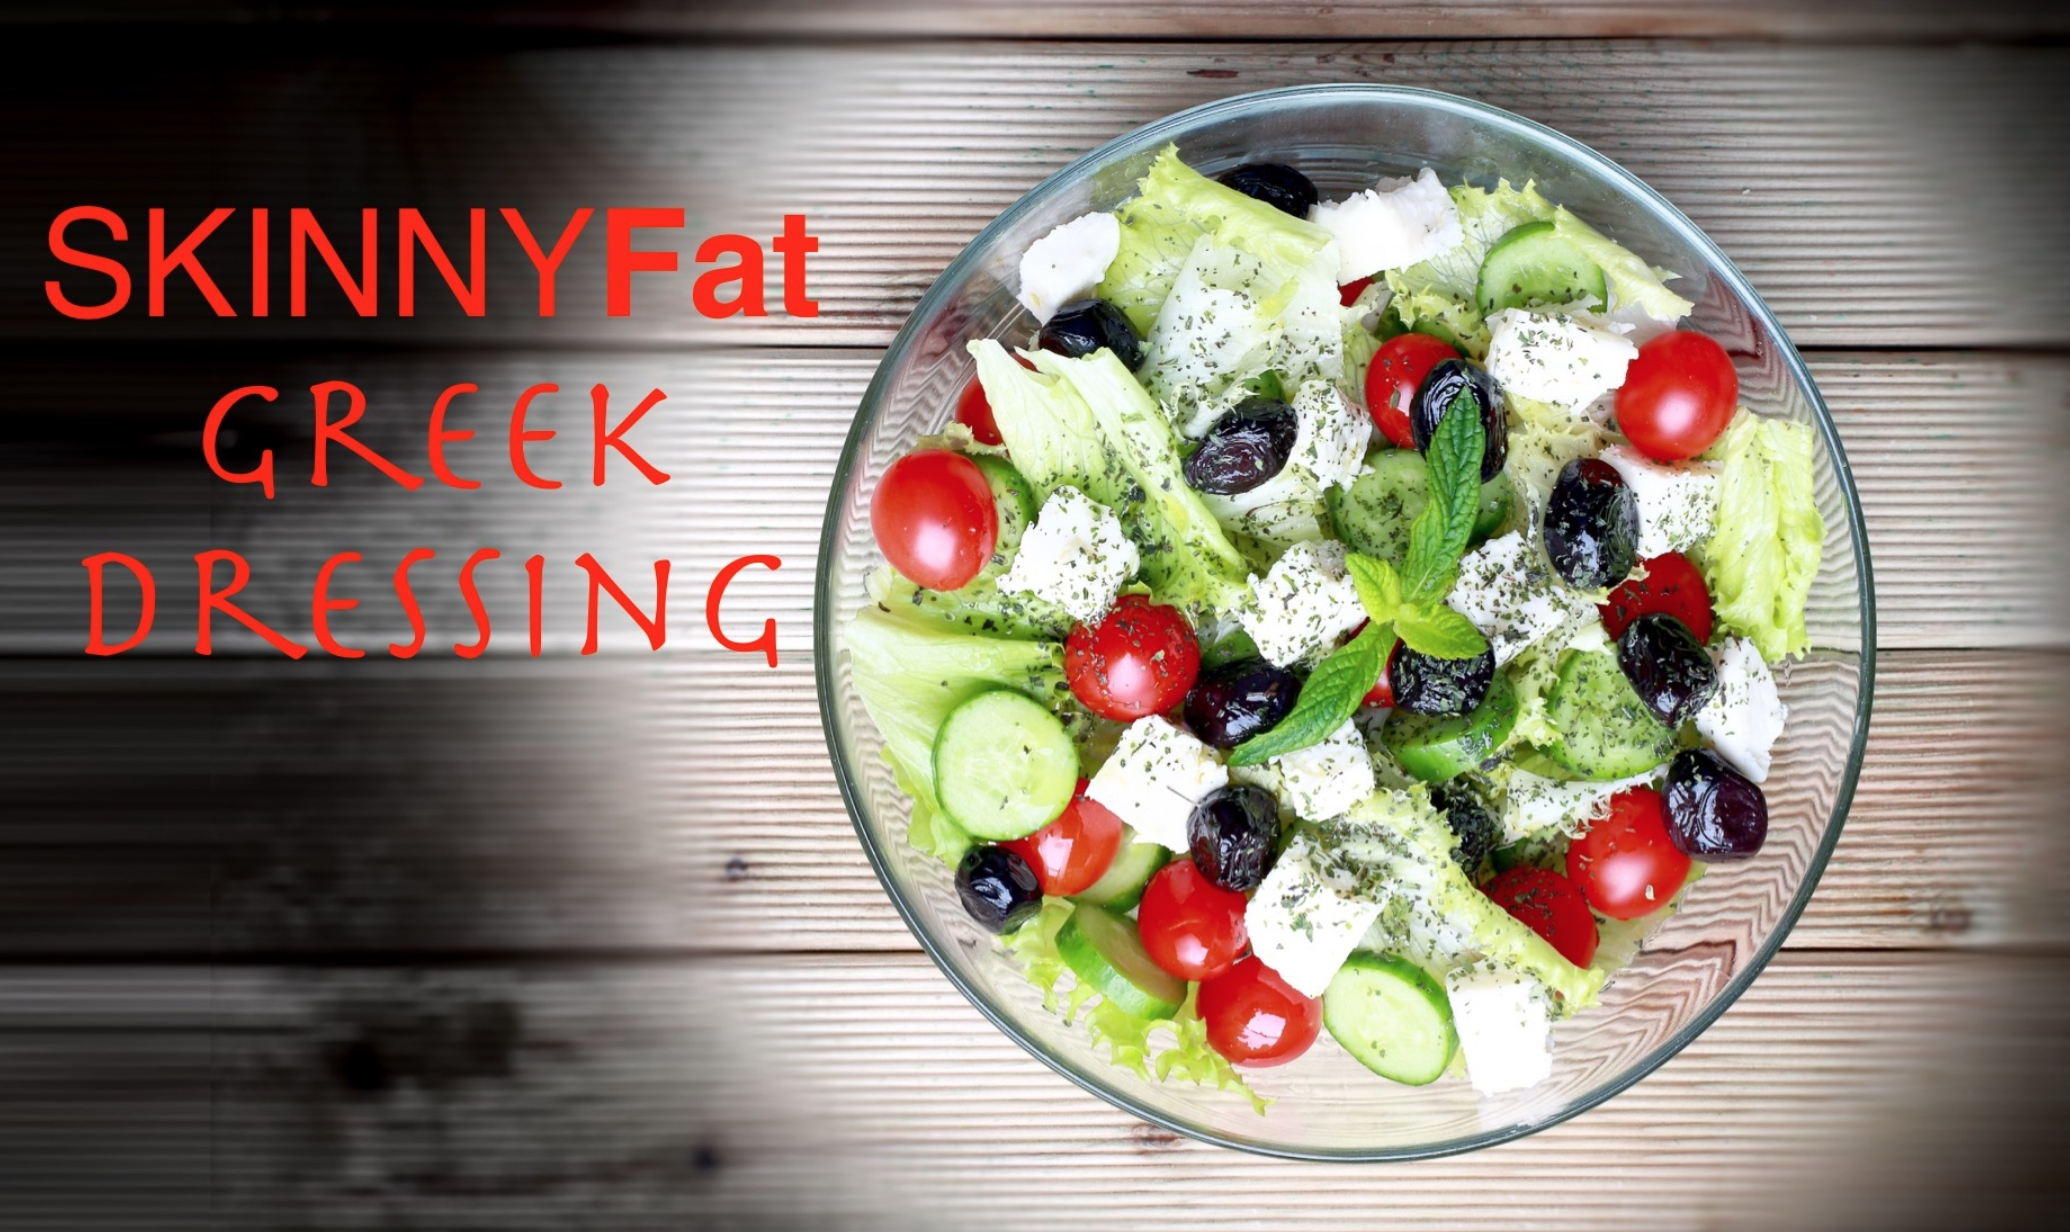 SKINNYFat Greek Dressing